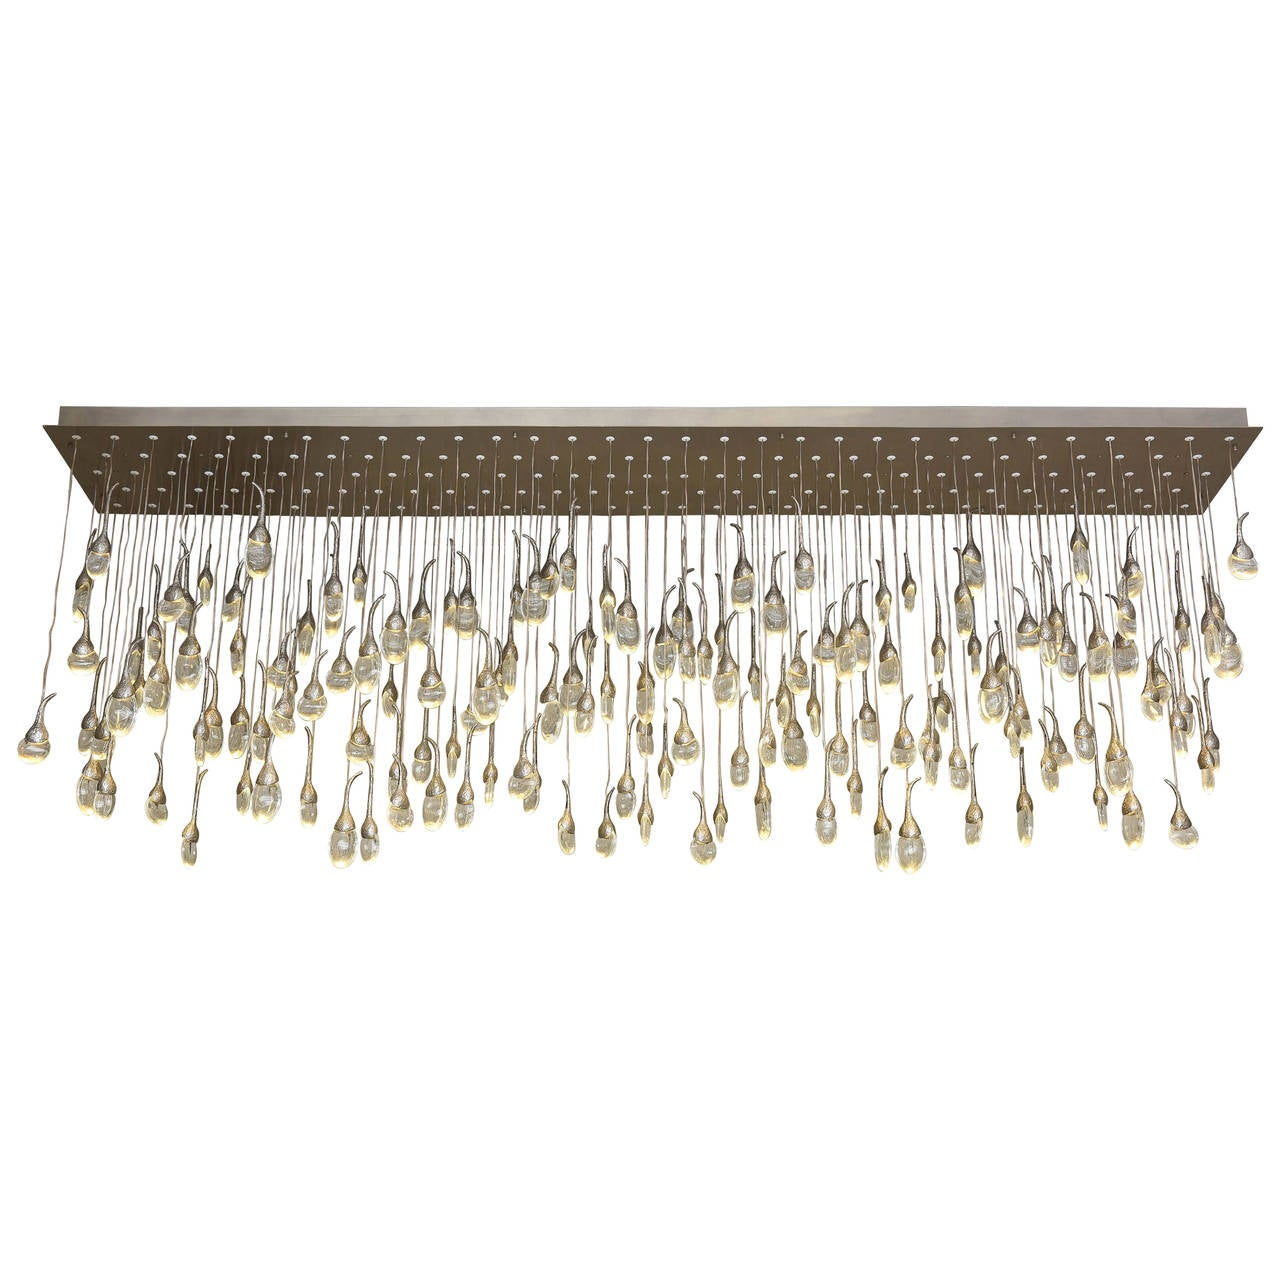 112 Light Seed Cloud Chandelier By Ochre At 1stdibs